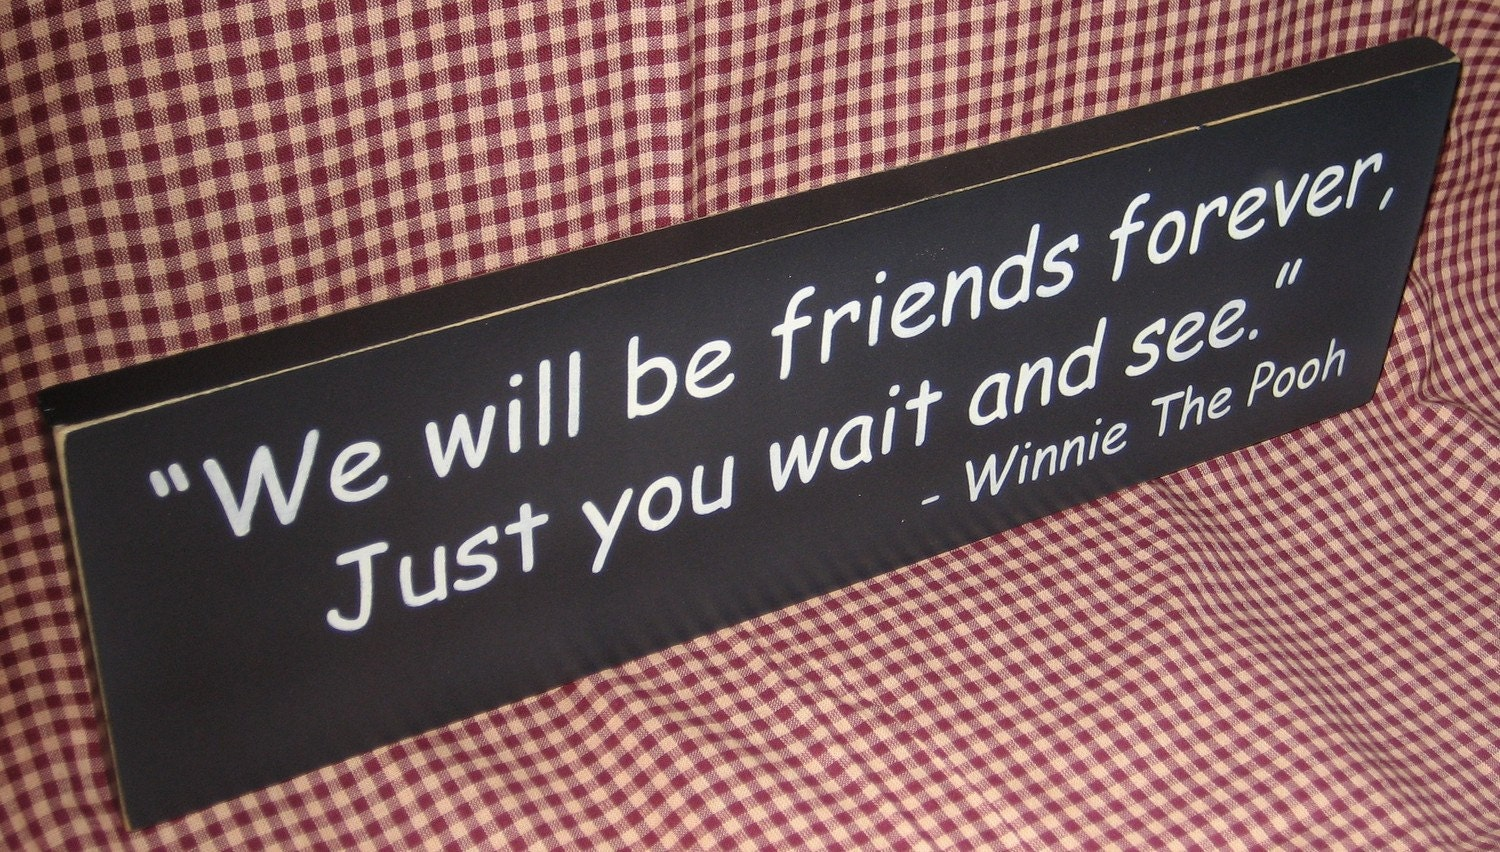 Friends Forever Quotes Xoaqwepo We Will Be Friends Forever Quotes